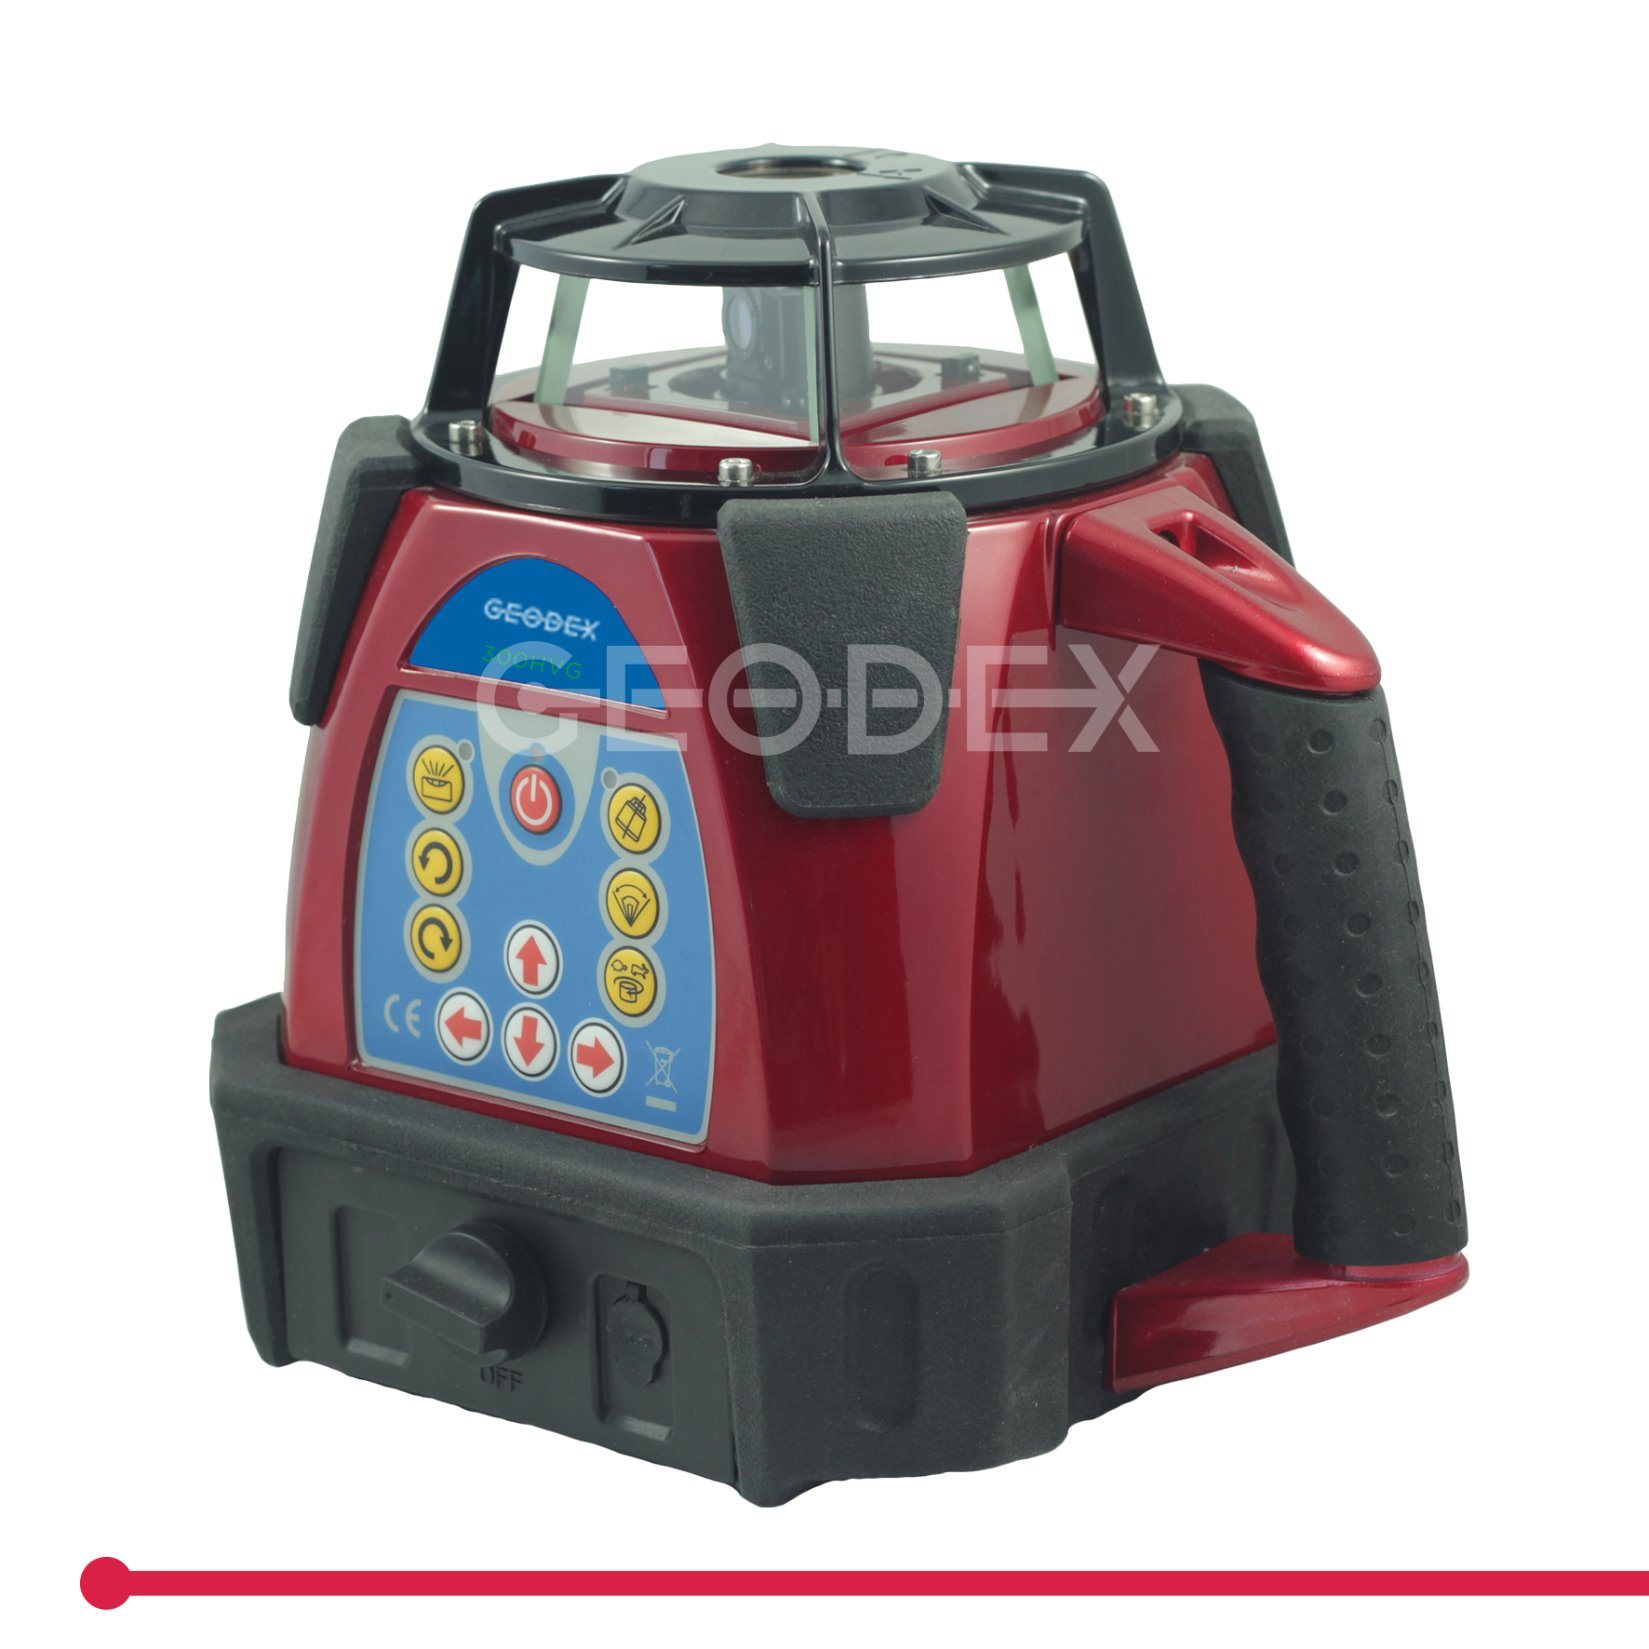 300hvg Laser Level with Dry Cell Pack Automatic Rotation Leveling